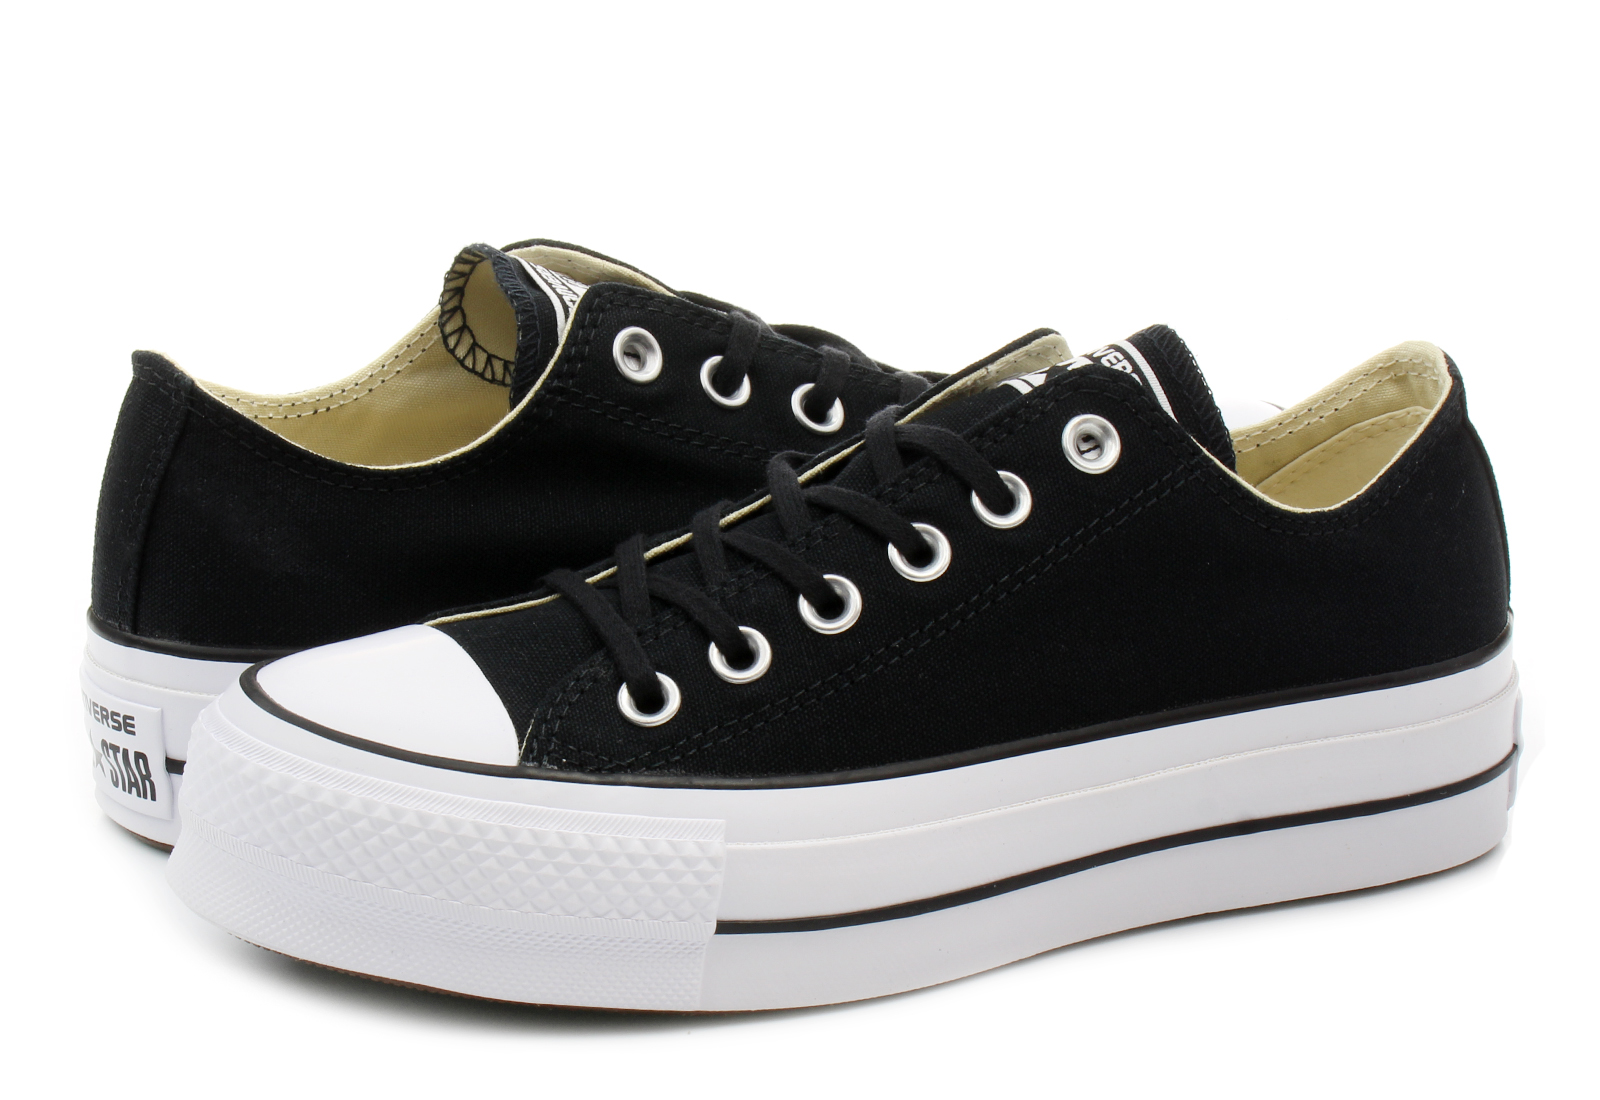 Converse Tornacipő - Chuck Taylor All Star Lift - 560250C - Office ... 13a76d8ba5